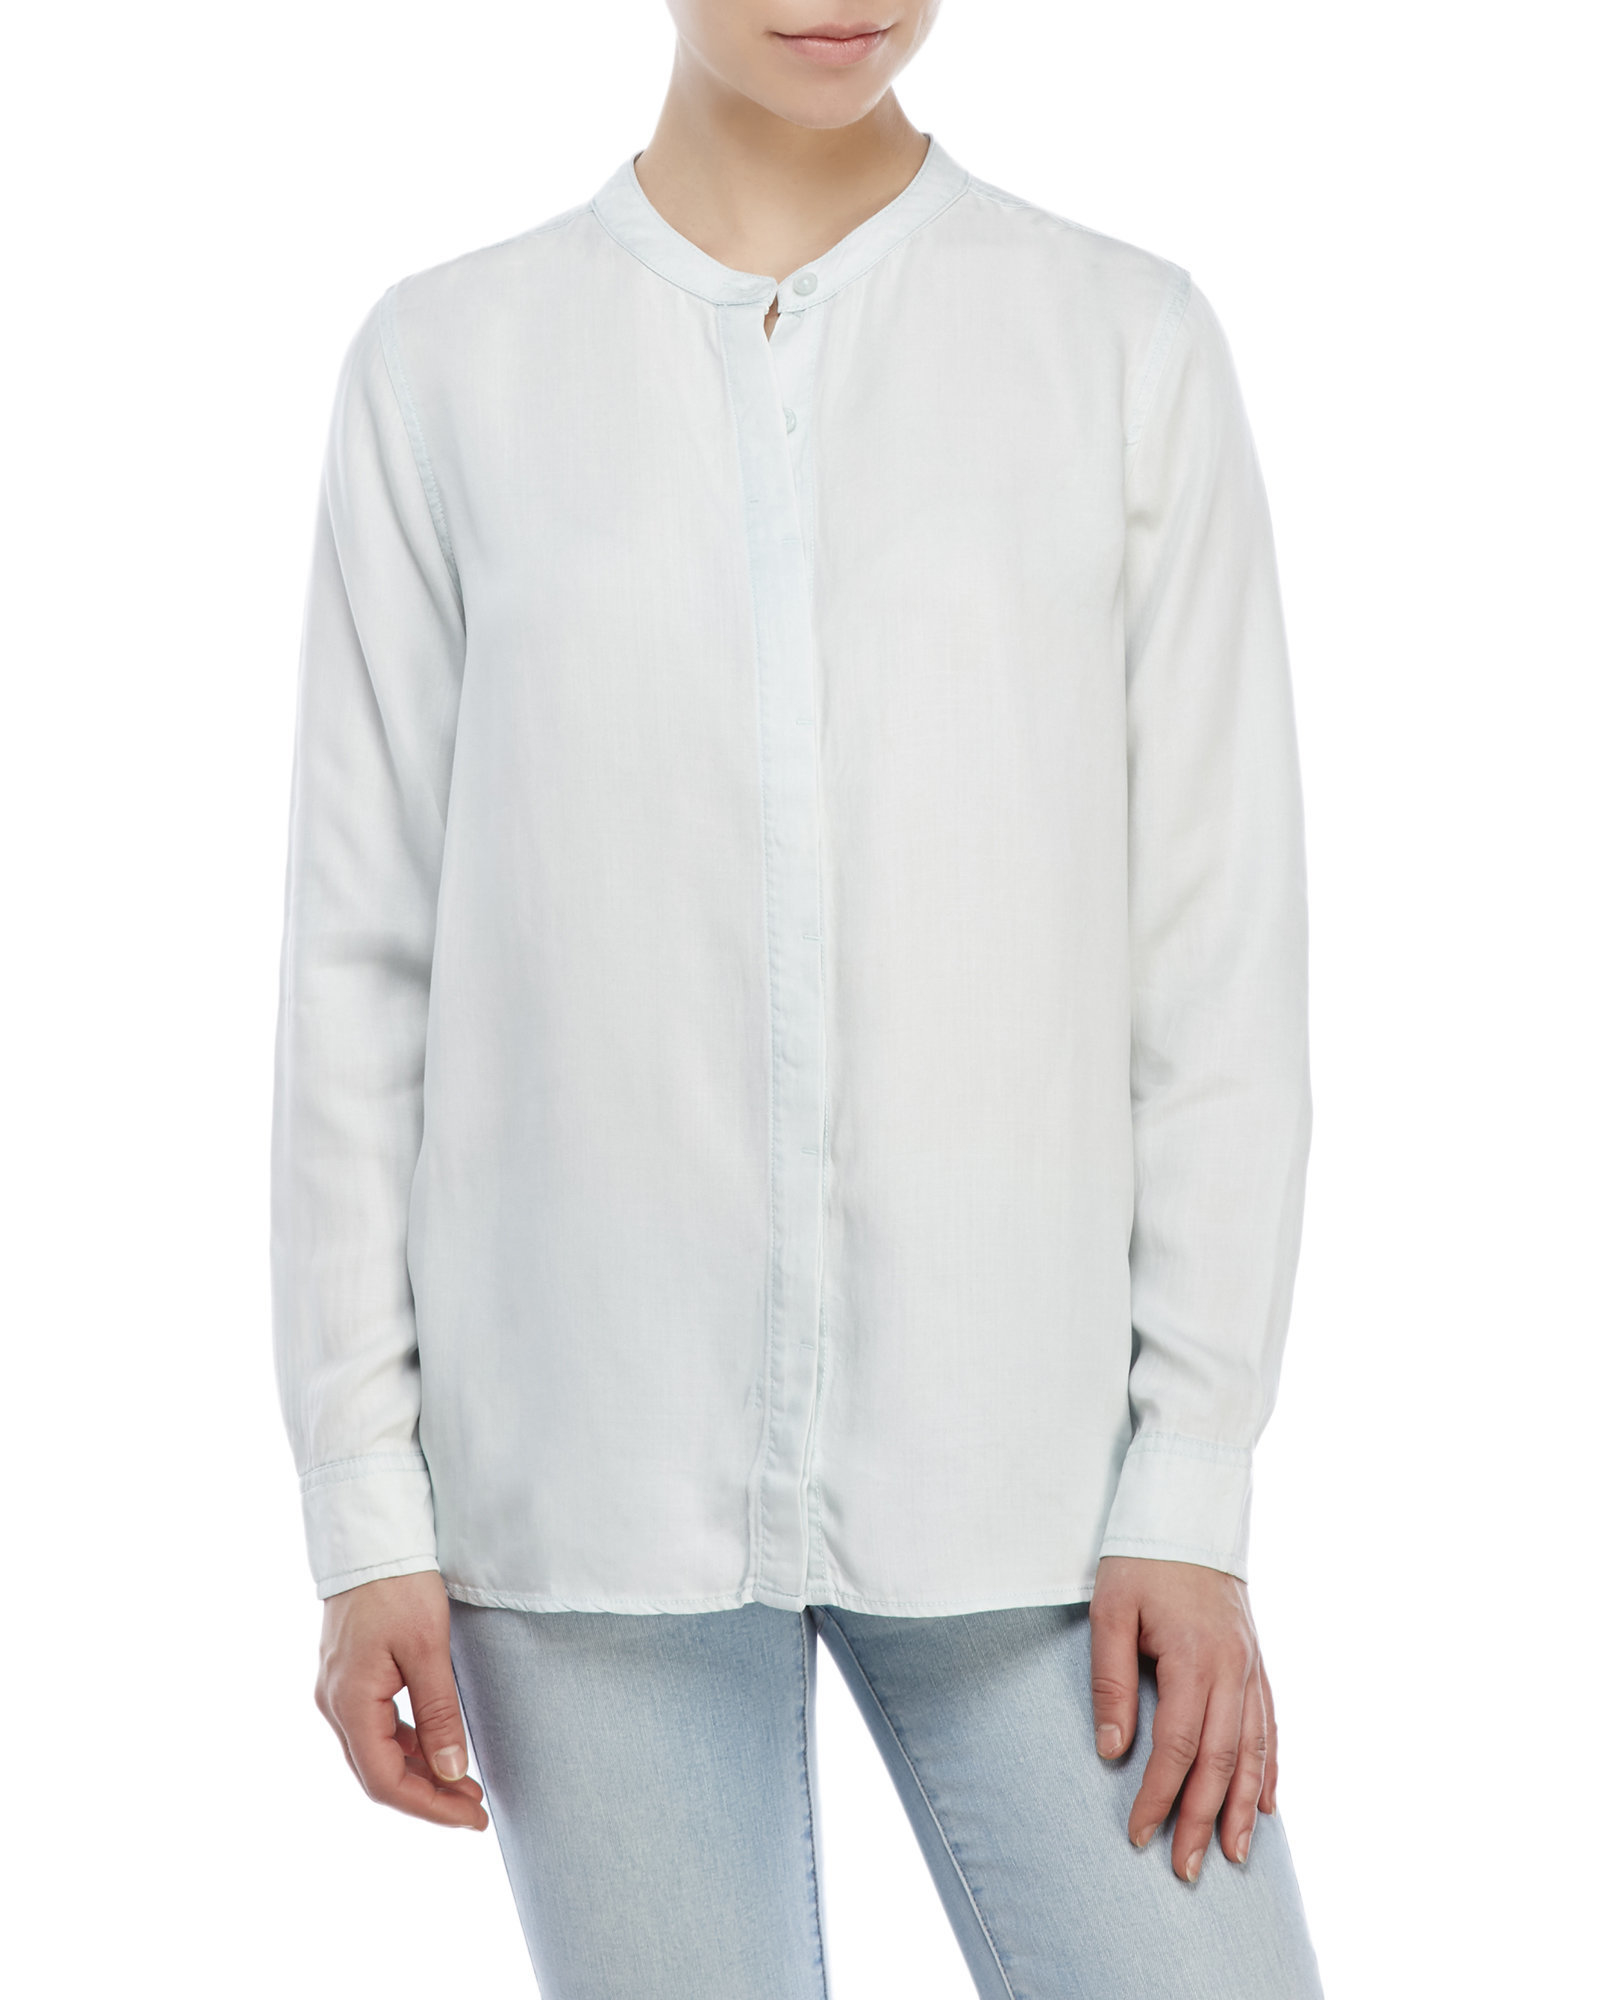 lyst century 21 mandarin collar button up shirt